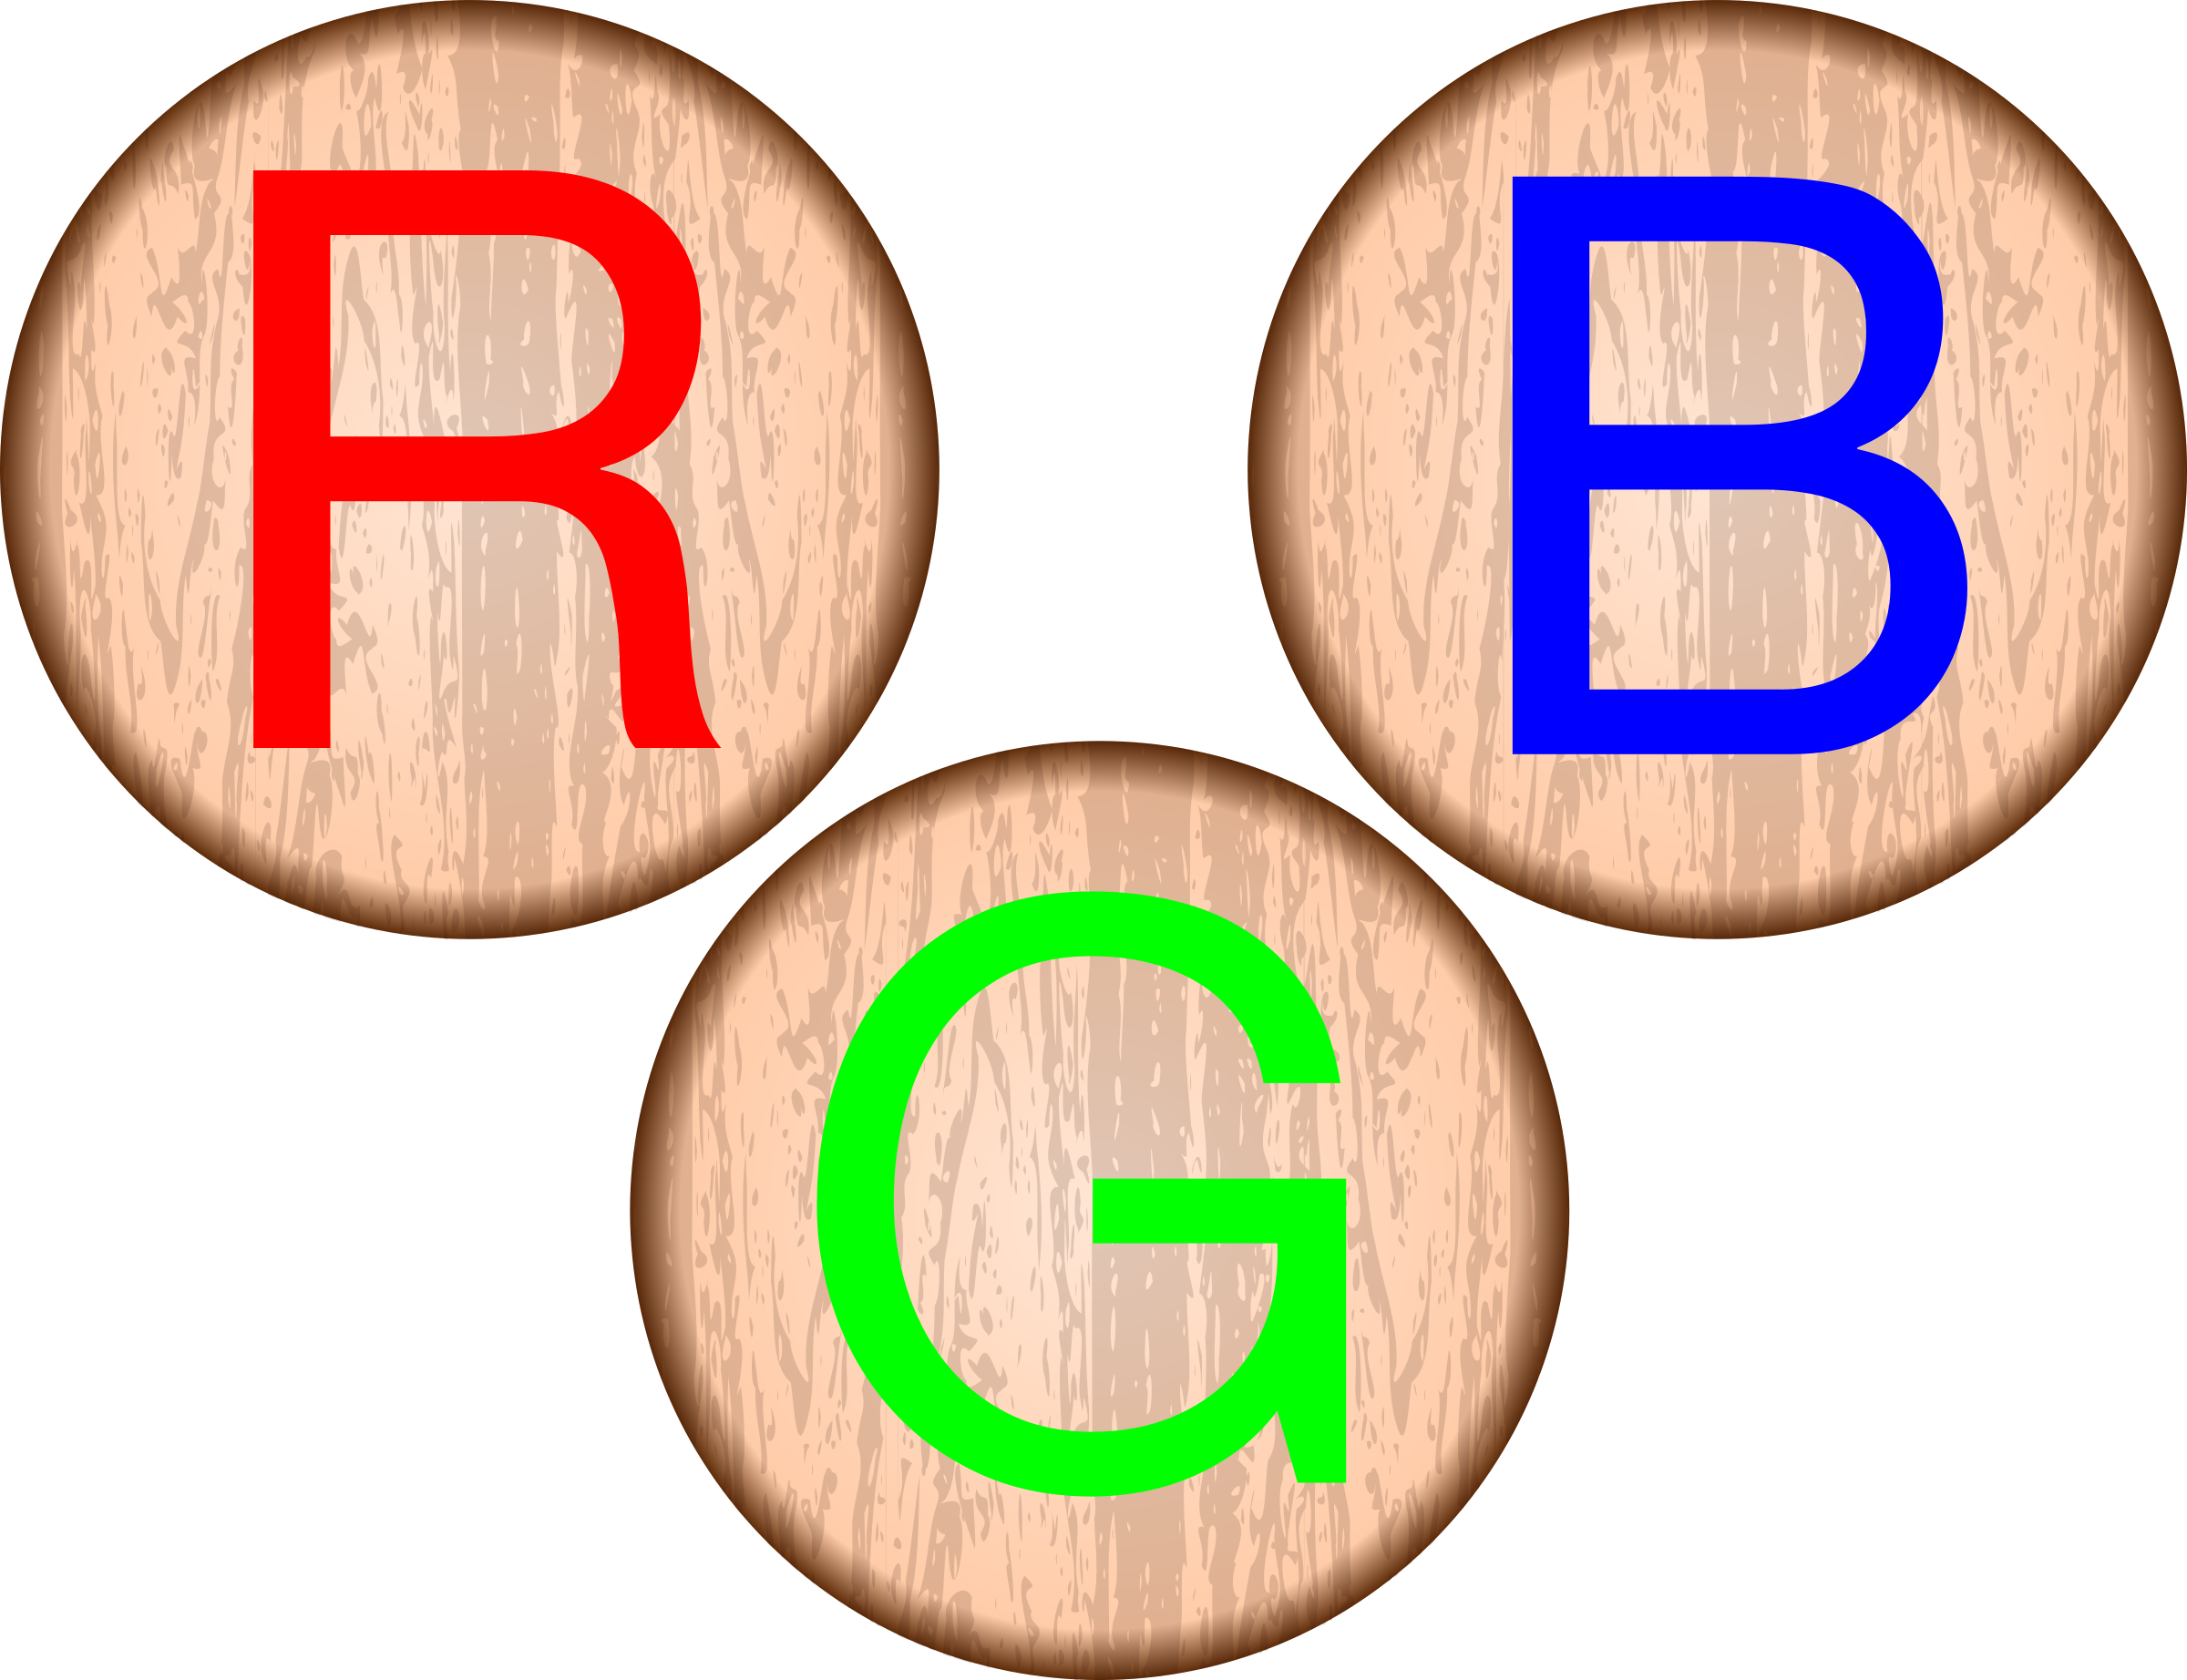 RGB barrels by jhnri4